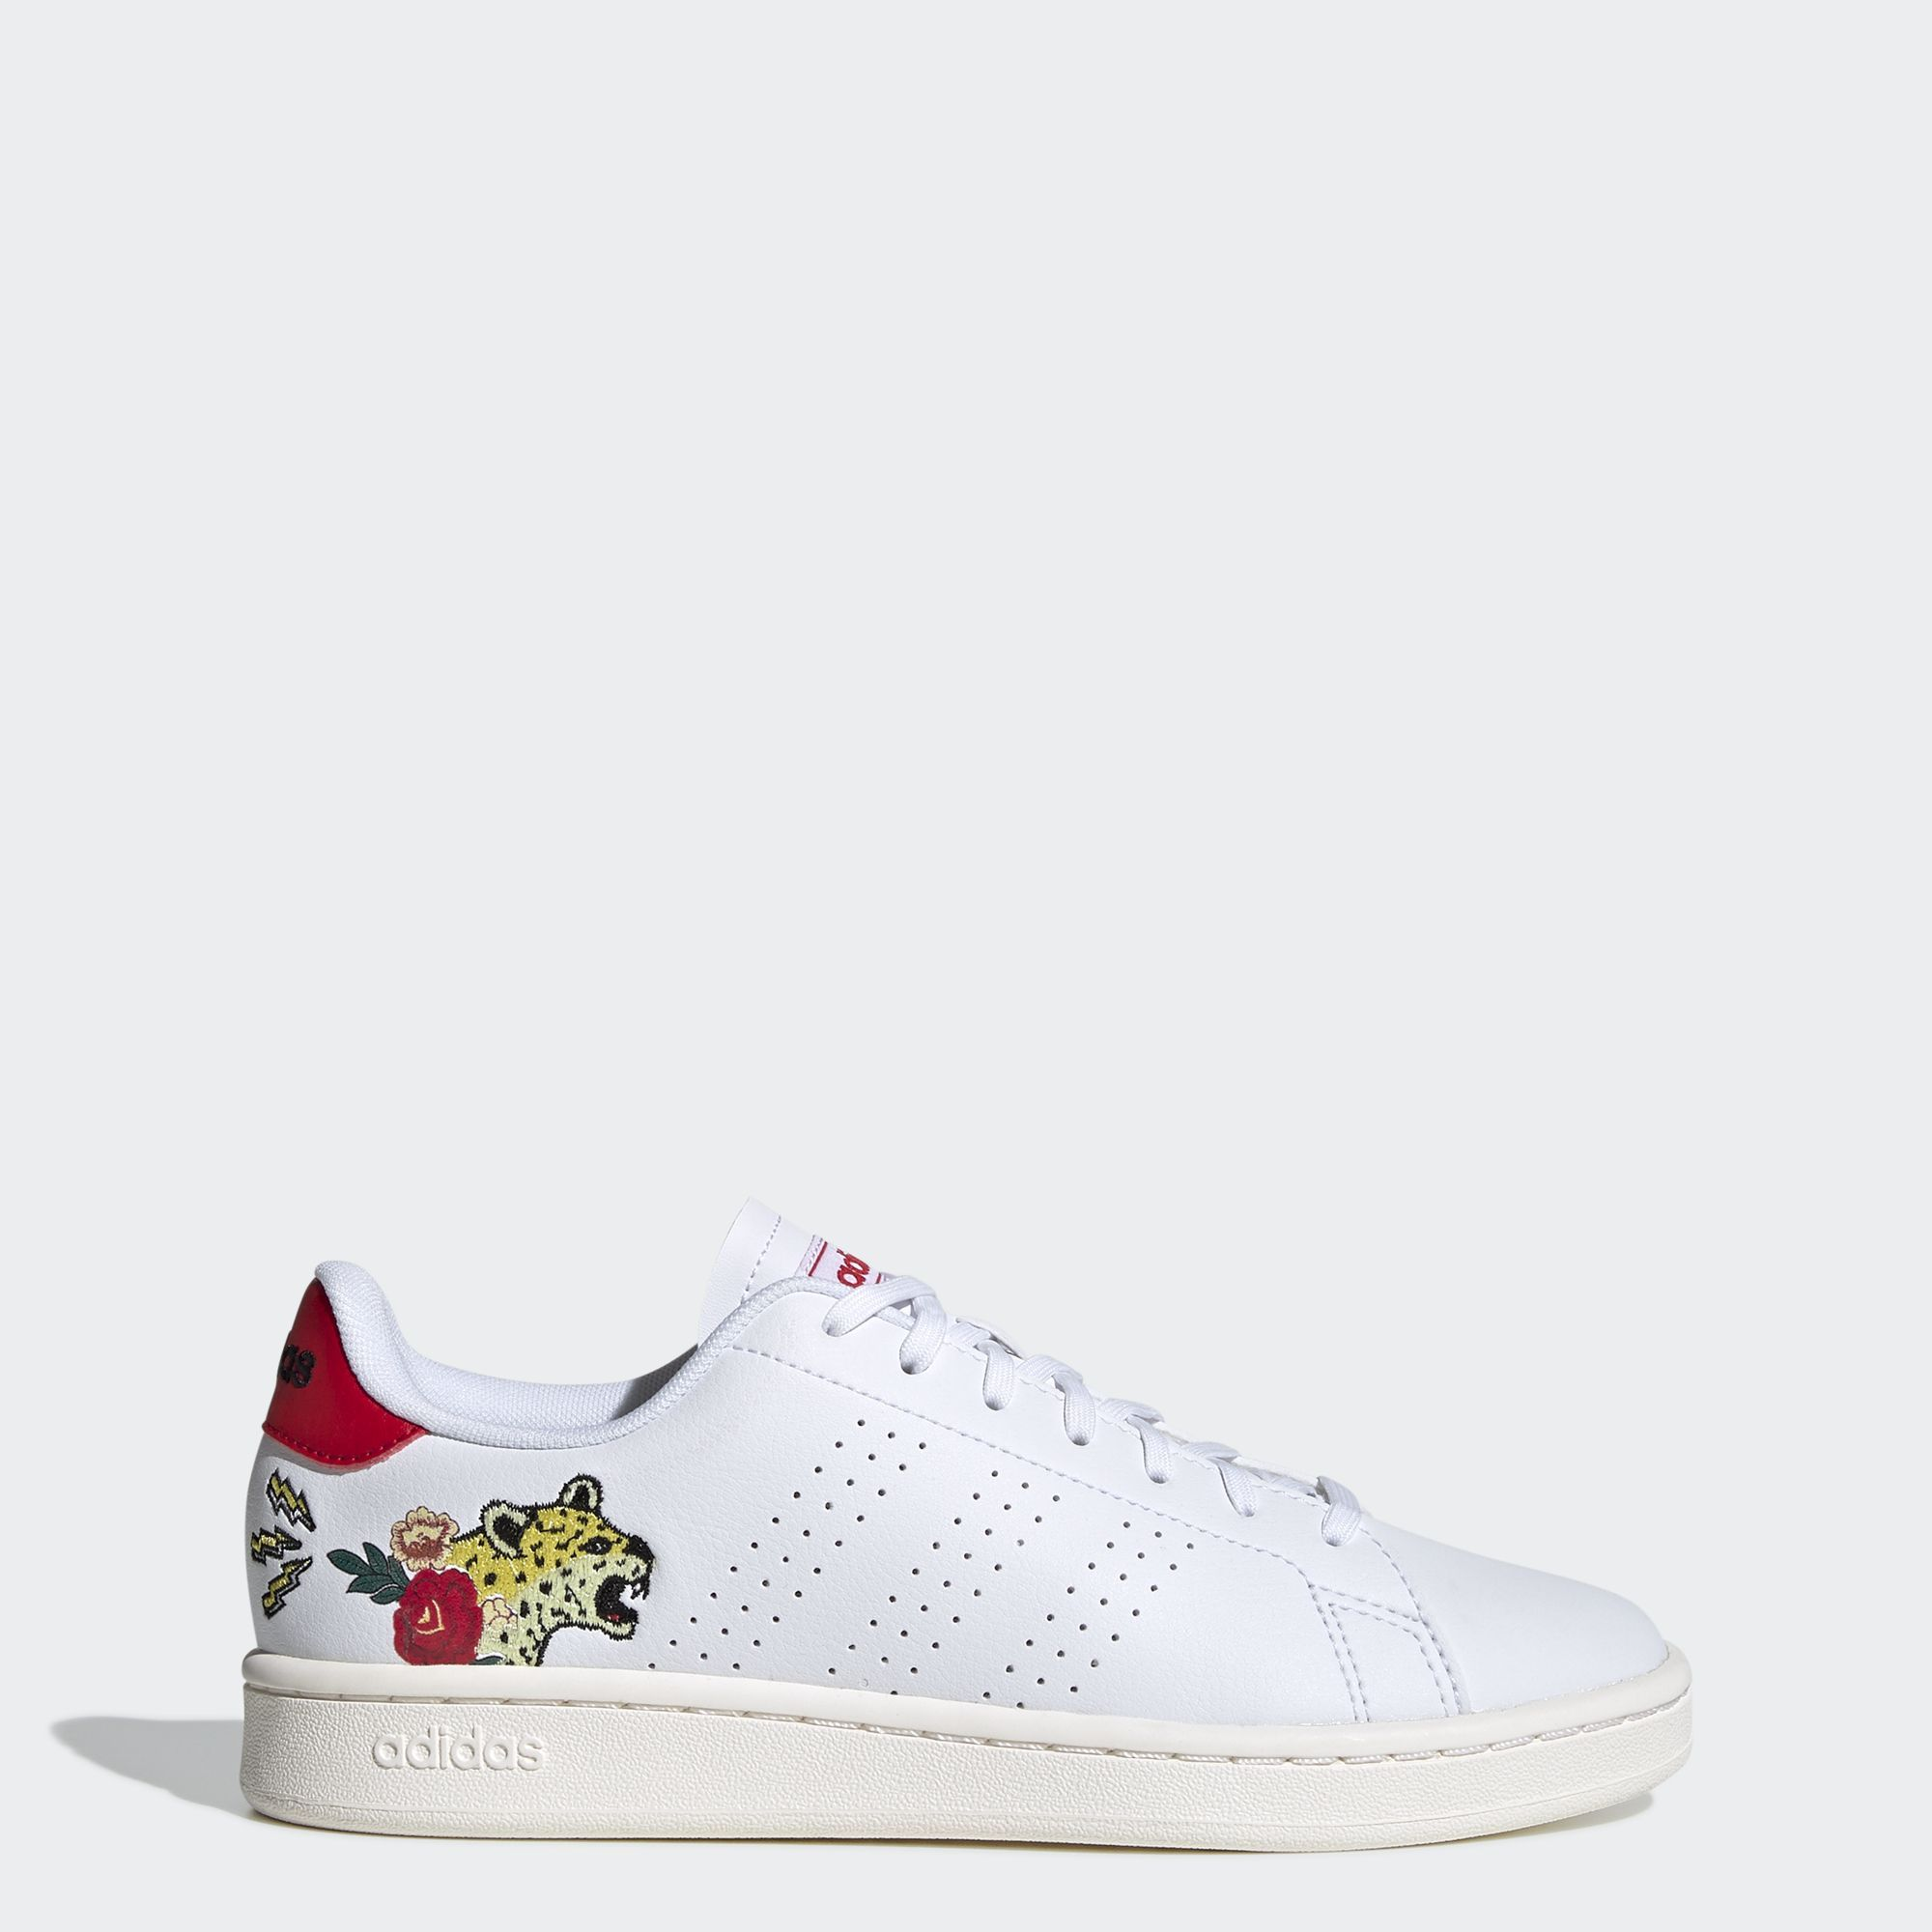 Buy Tennis Shoes at Best Price Online